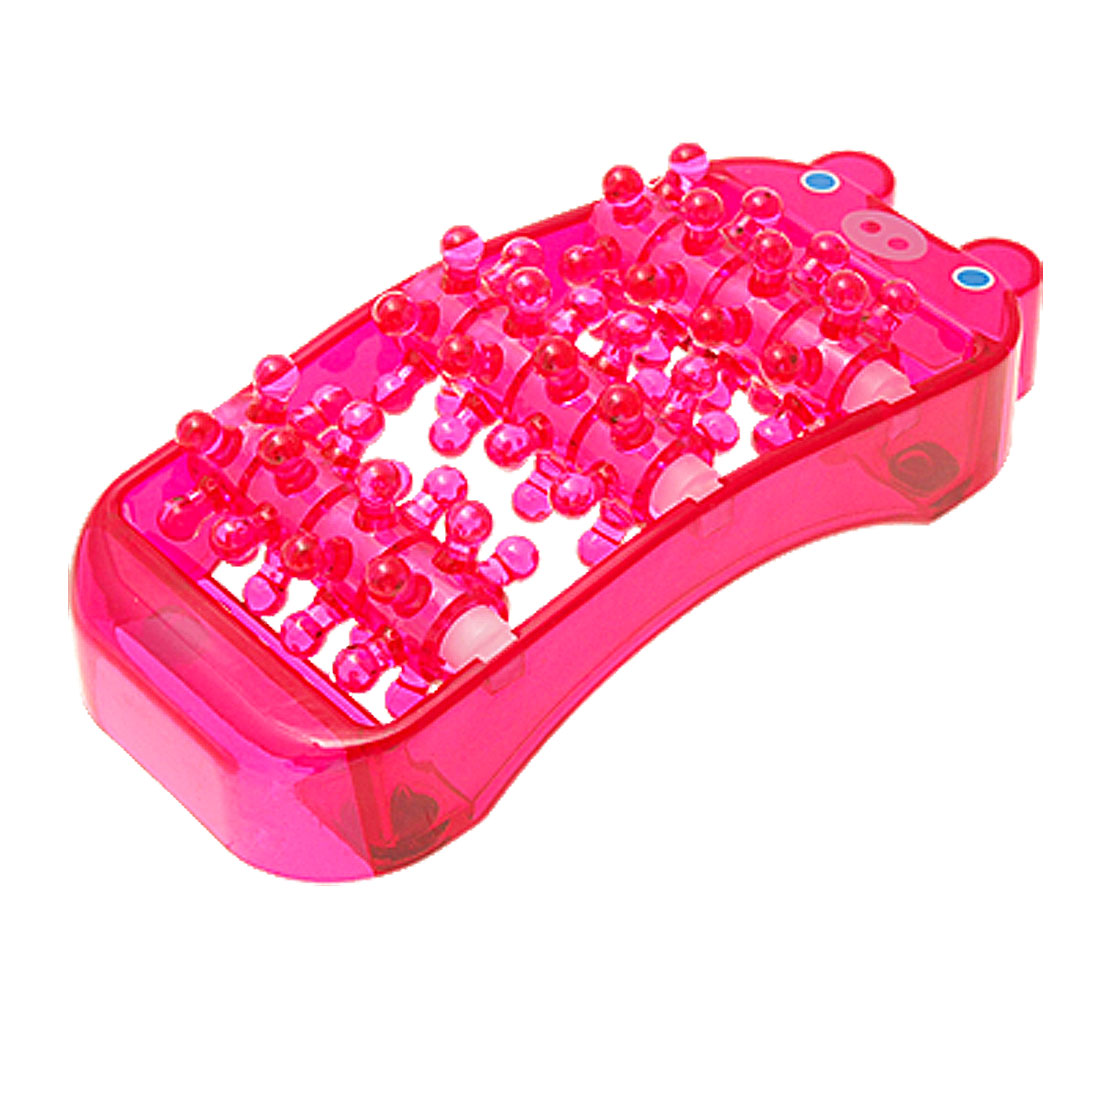 Plastic Foot Roller Release Relax Massager Red